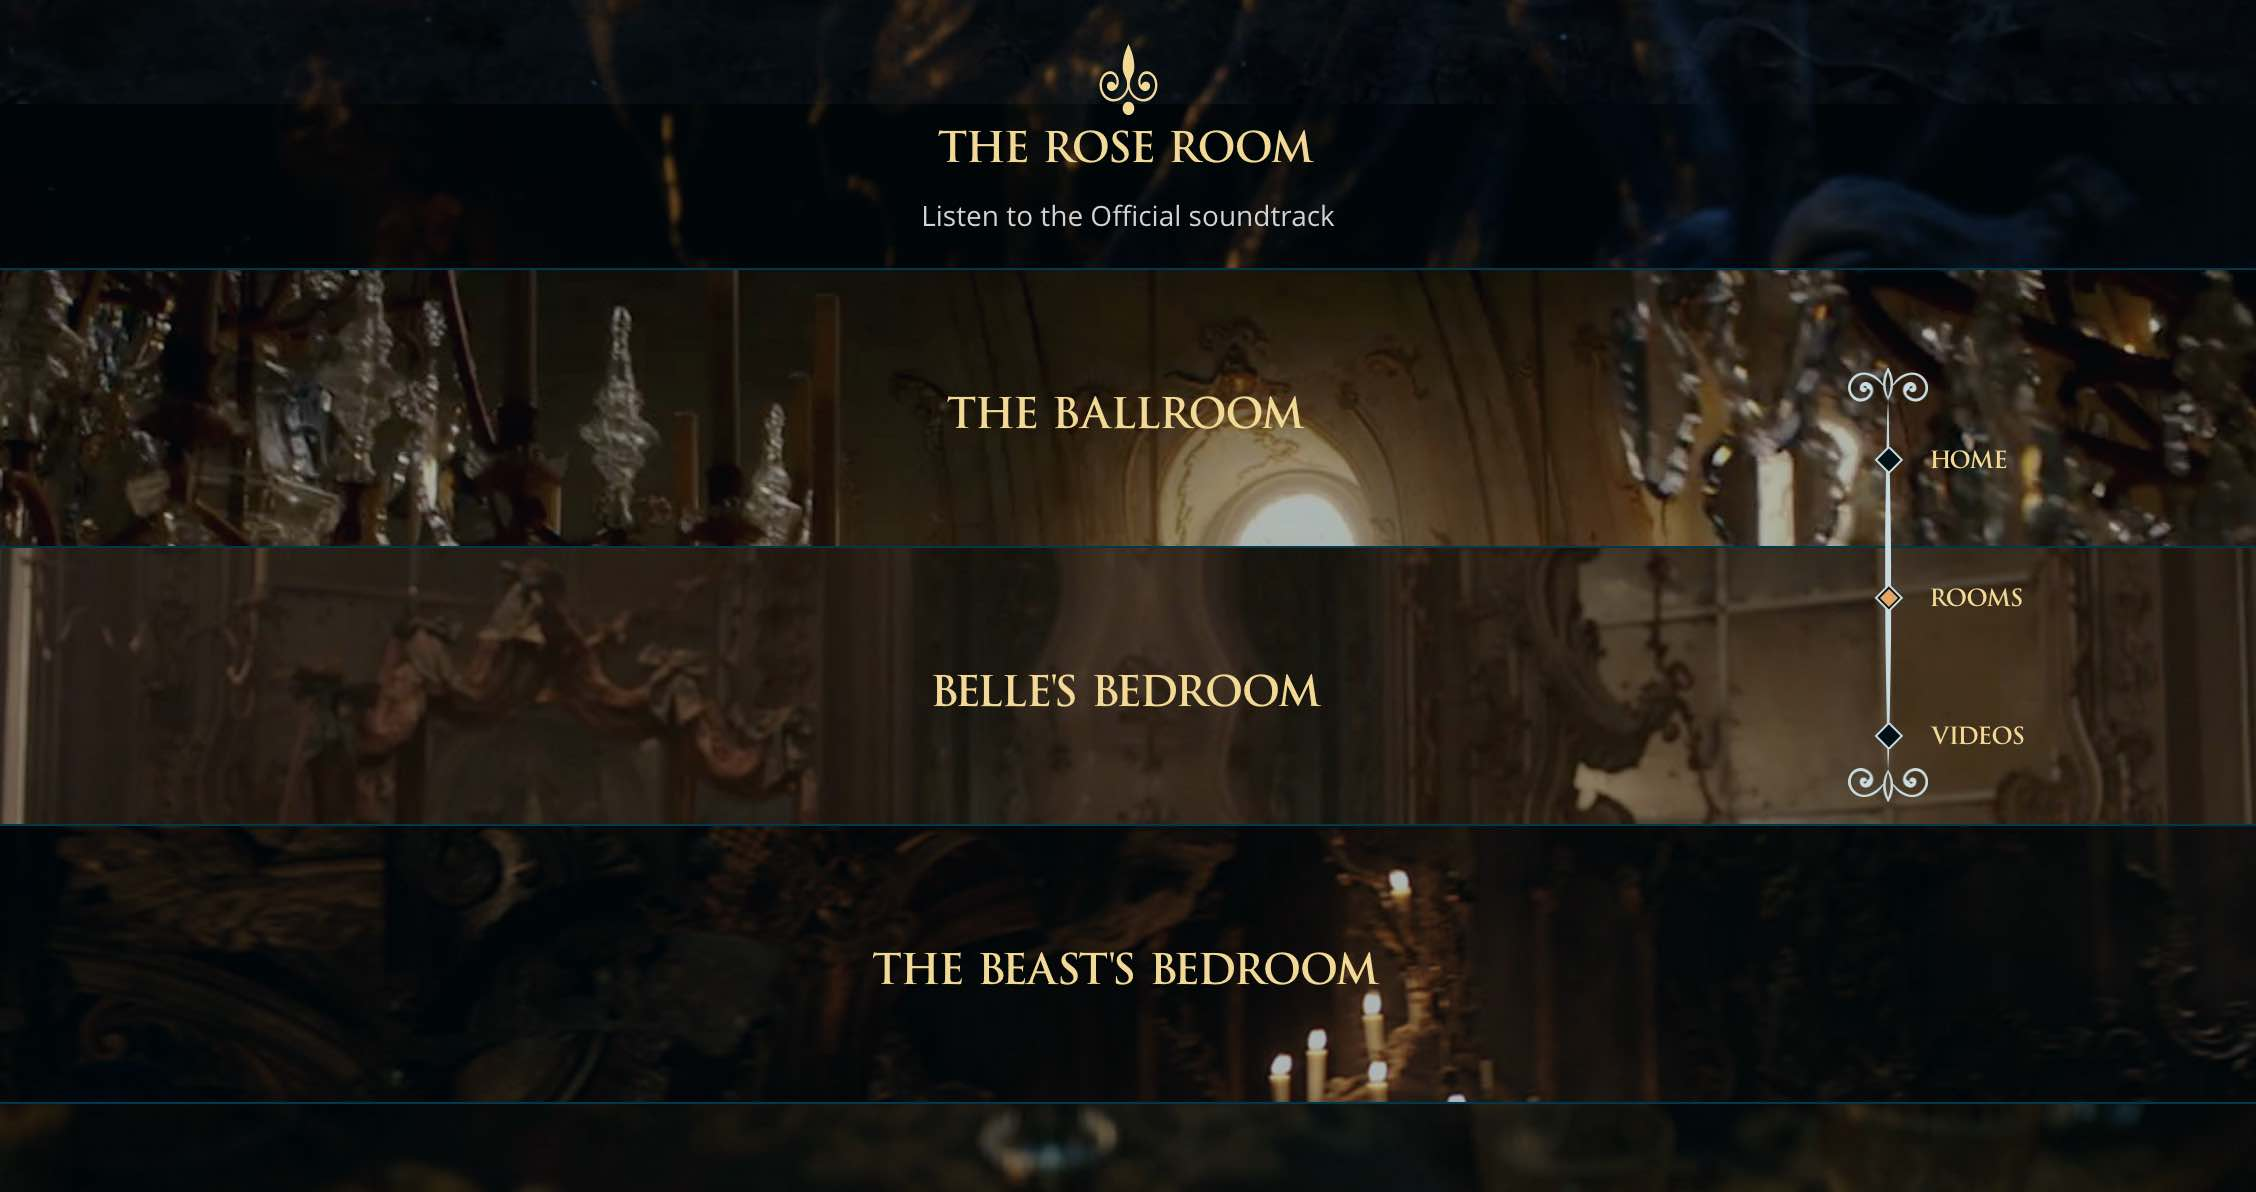 Beauty and the beast belles bedroom - Each Of The Rooms Has A Bespoke Curated Spotify Playlist And Features Beautiful Photography From The Film The Beauty And The Beast Microsite Also Features